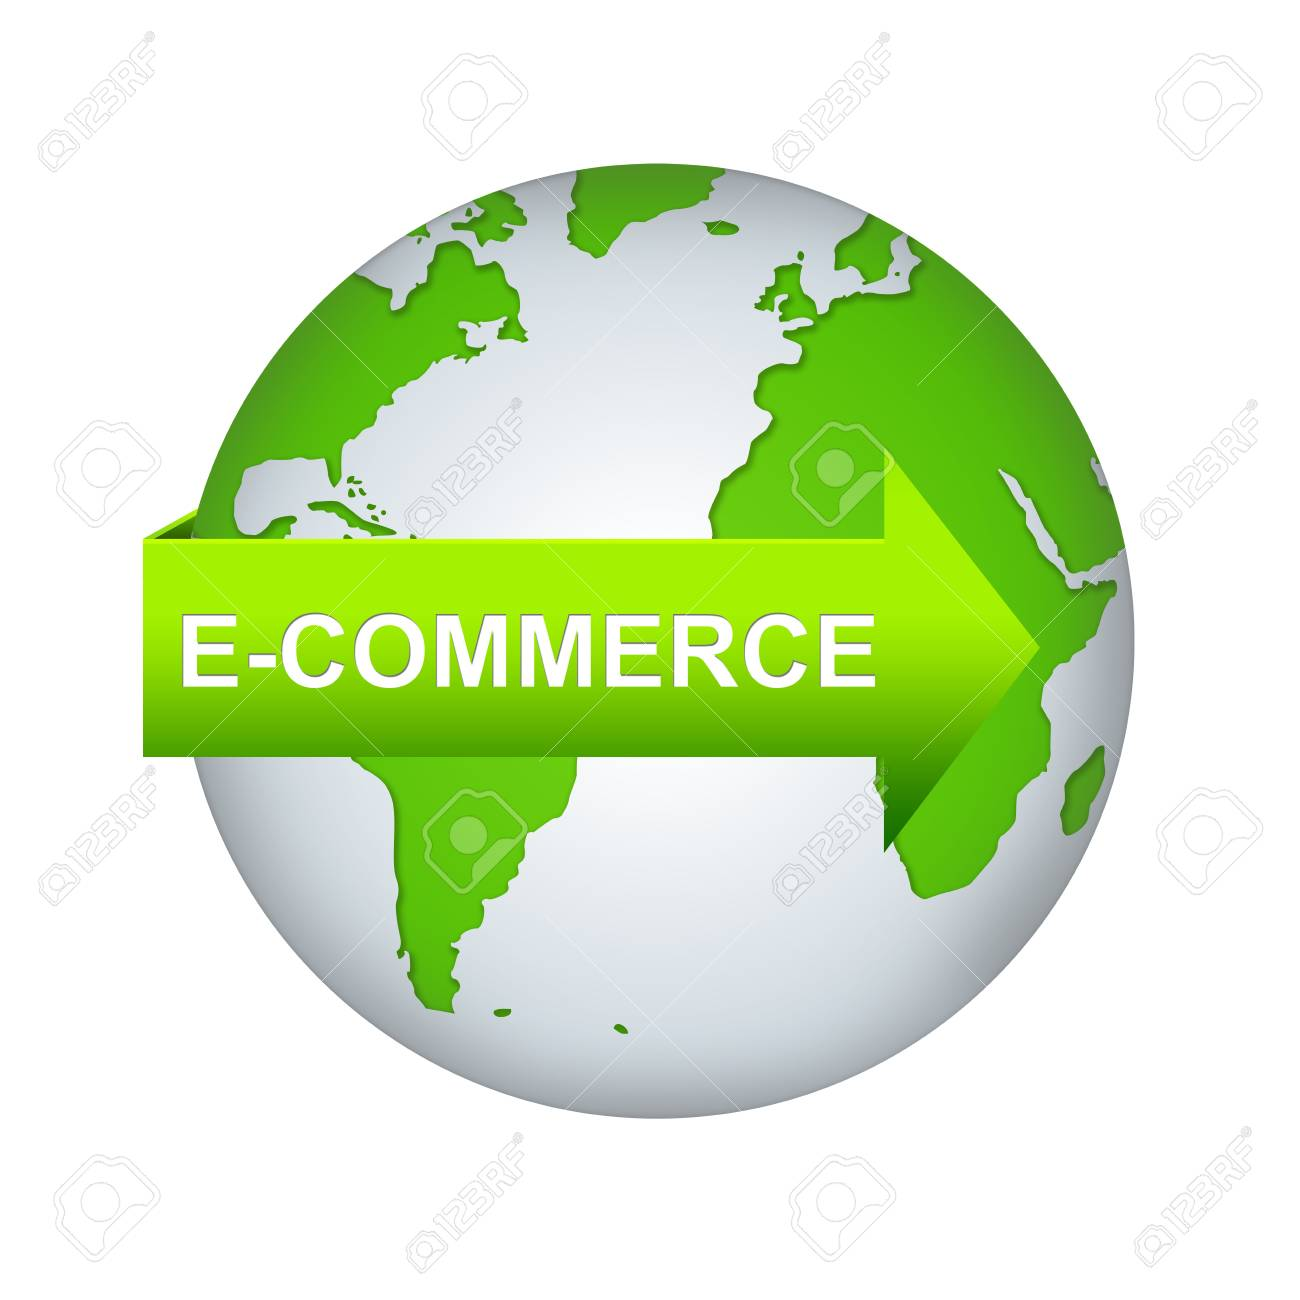 E-Commerce Concept Present By Green Earth With E-Commerce Arrow Isolated on White Background Stock Photo - 17452841